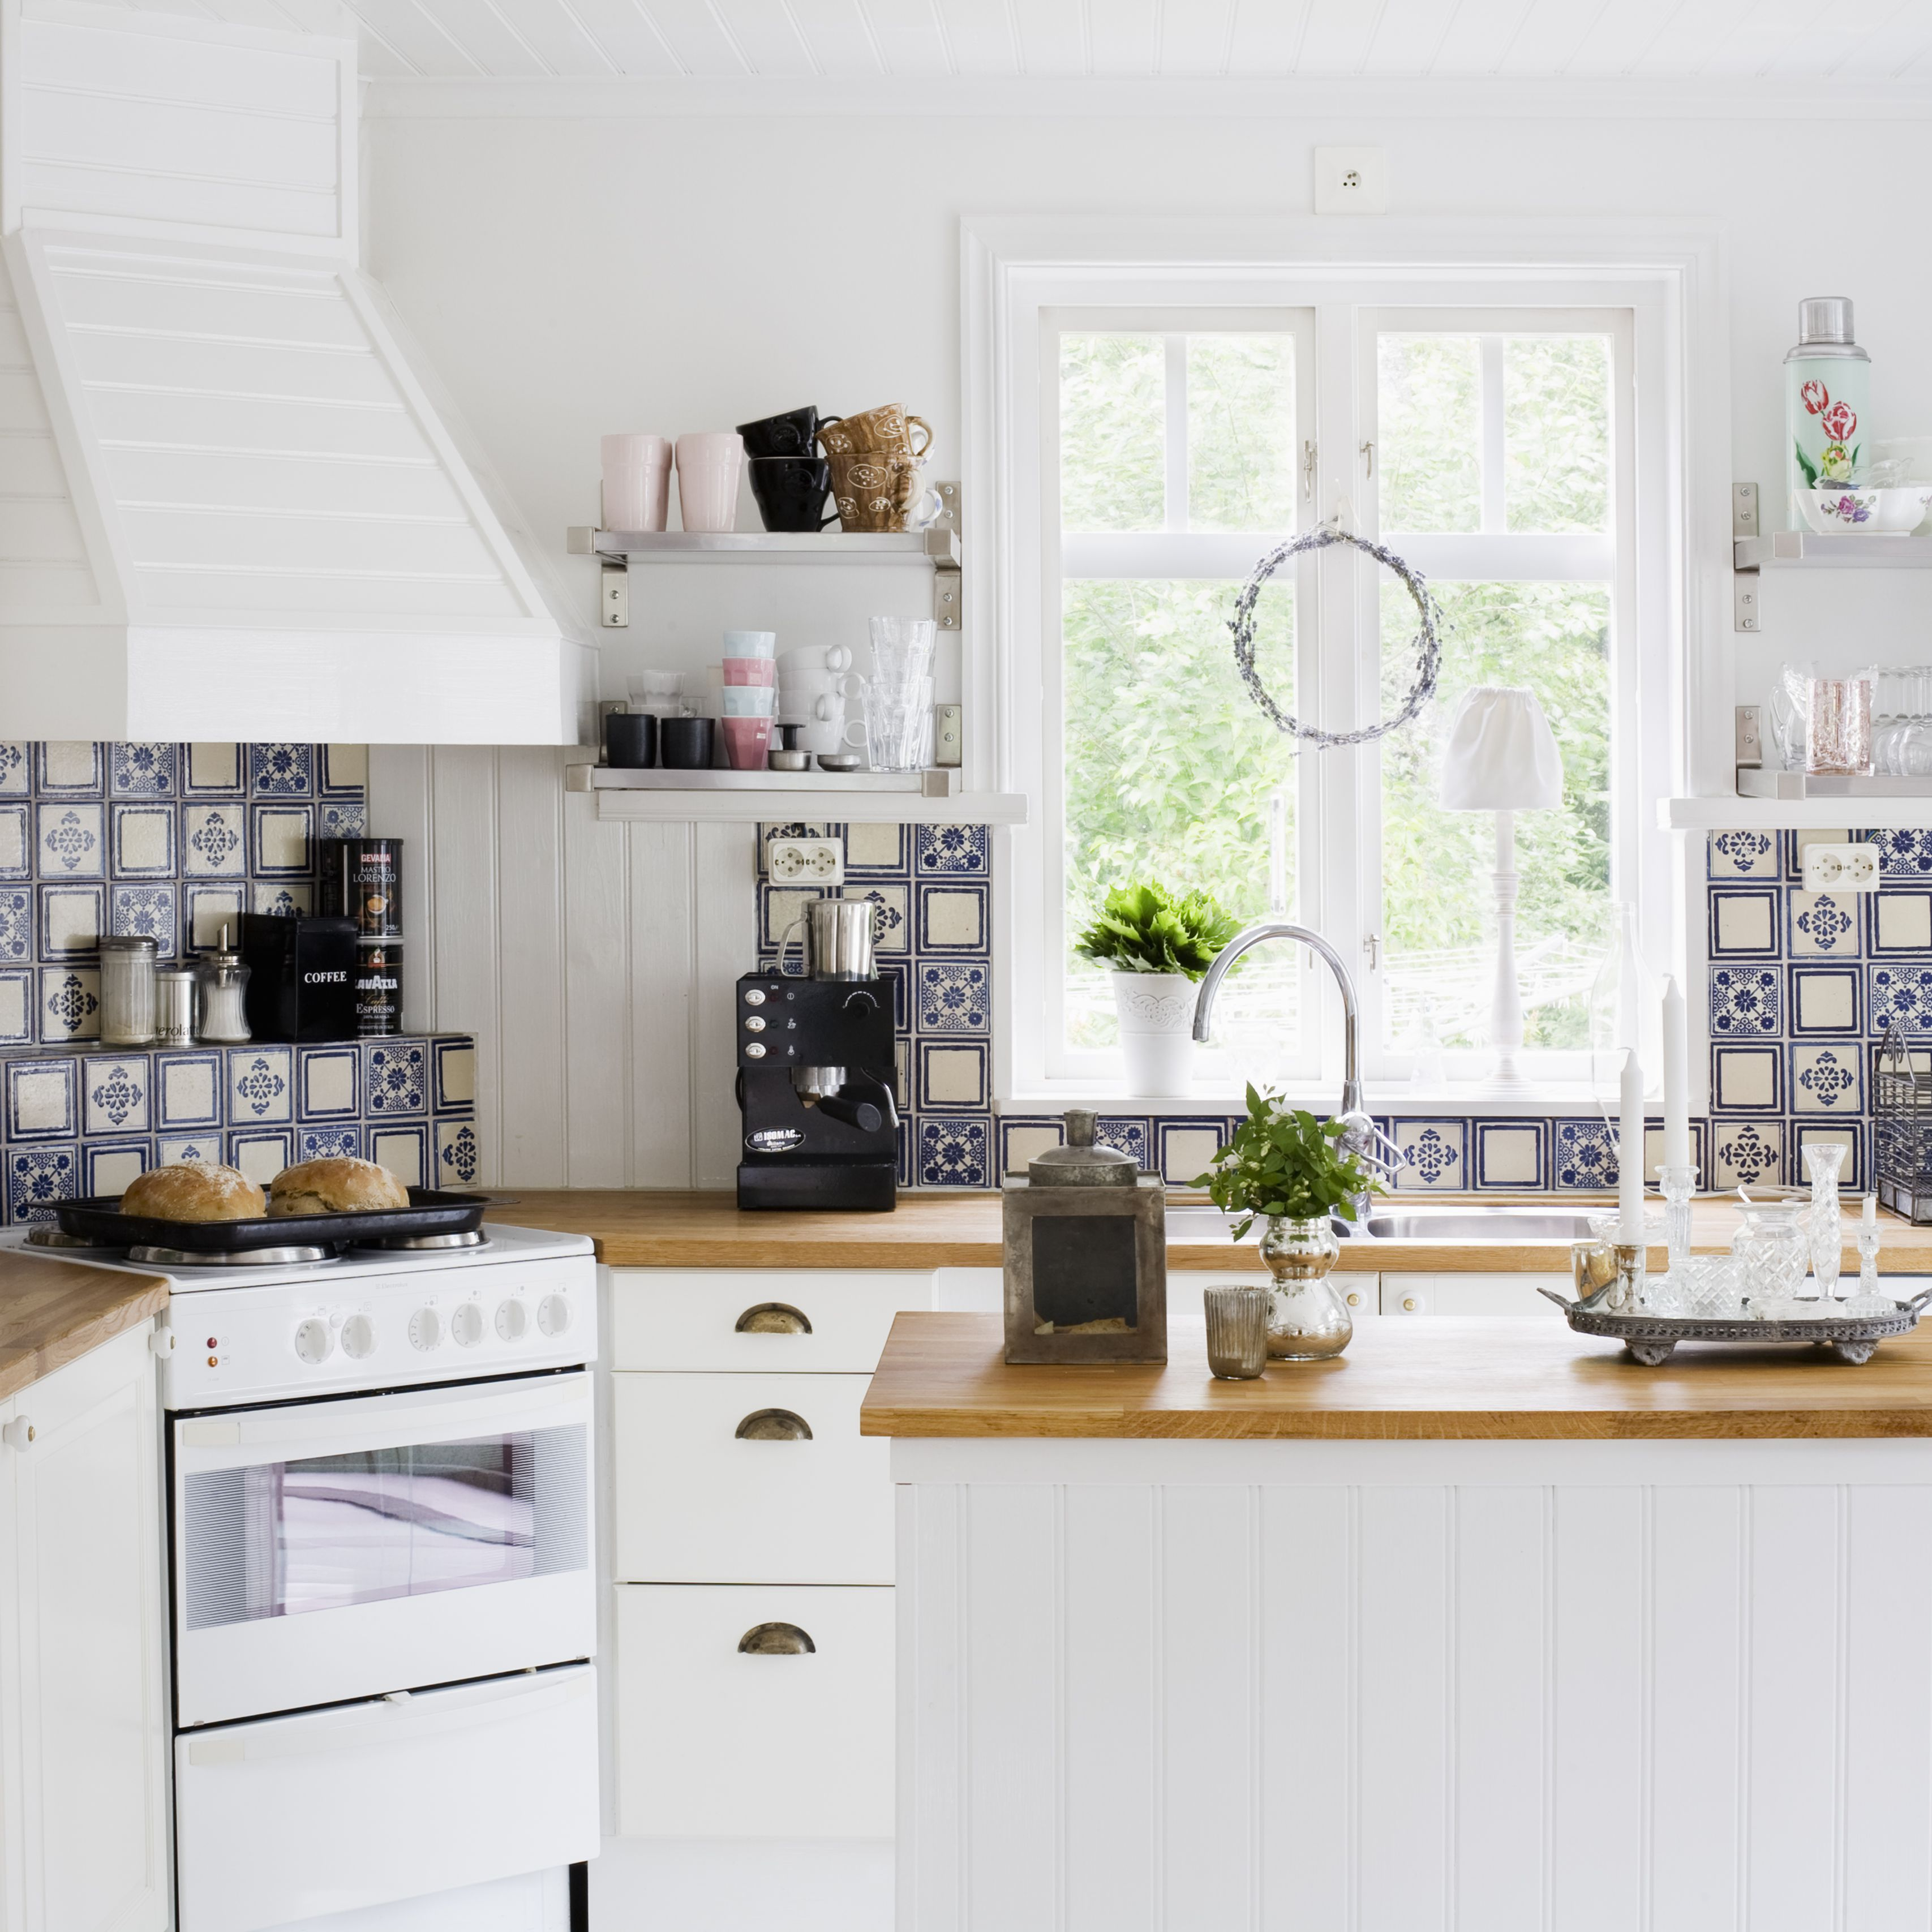 Beautify Your Cooking Space With the Best Paint for Kitchens